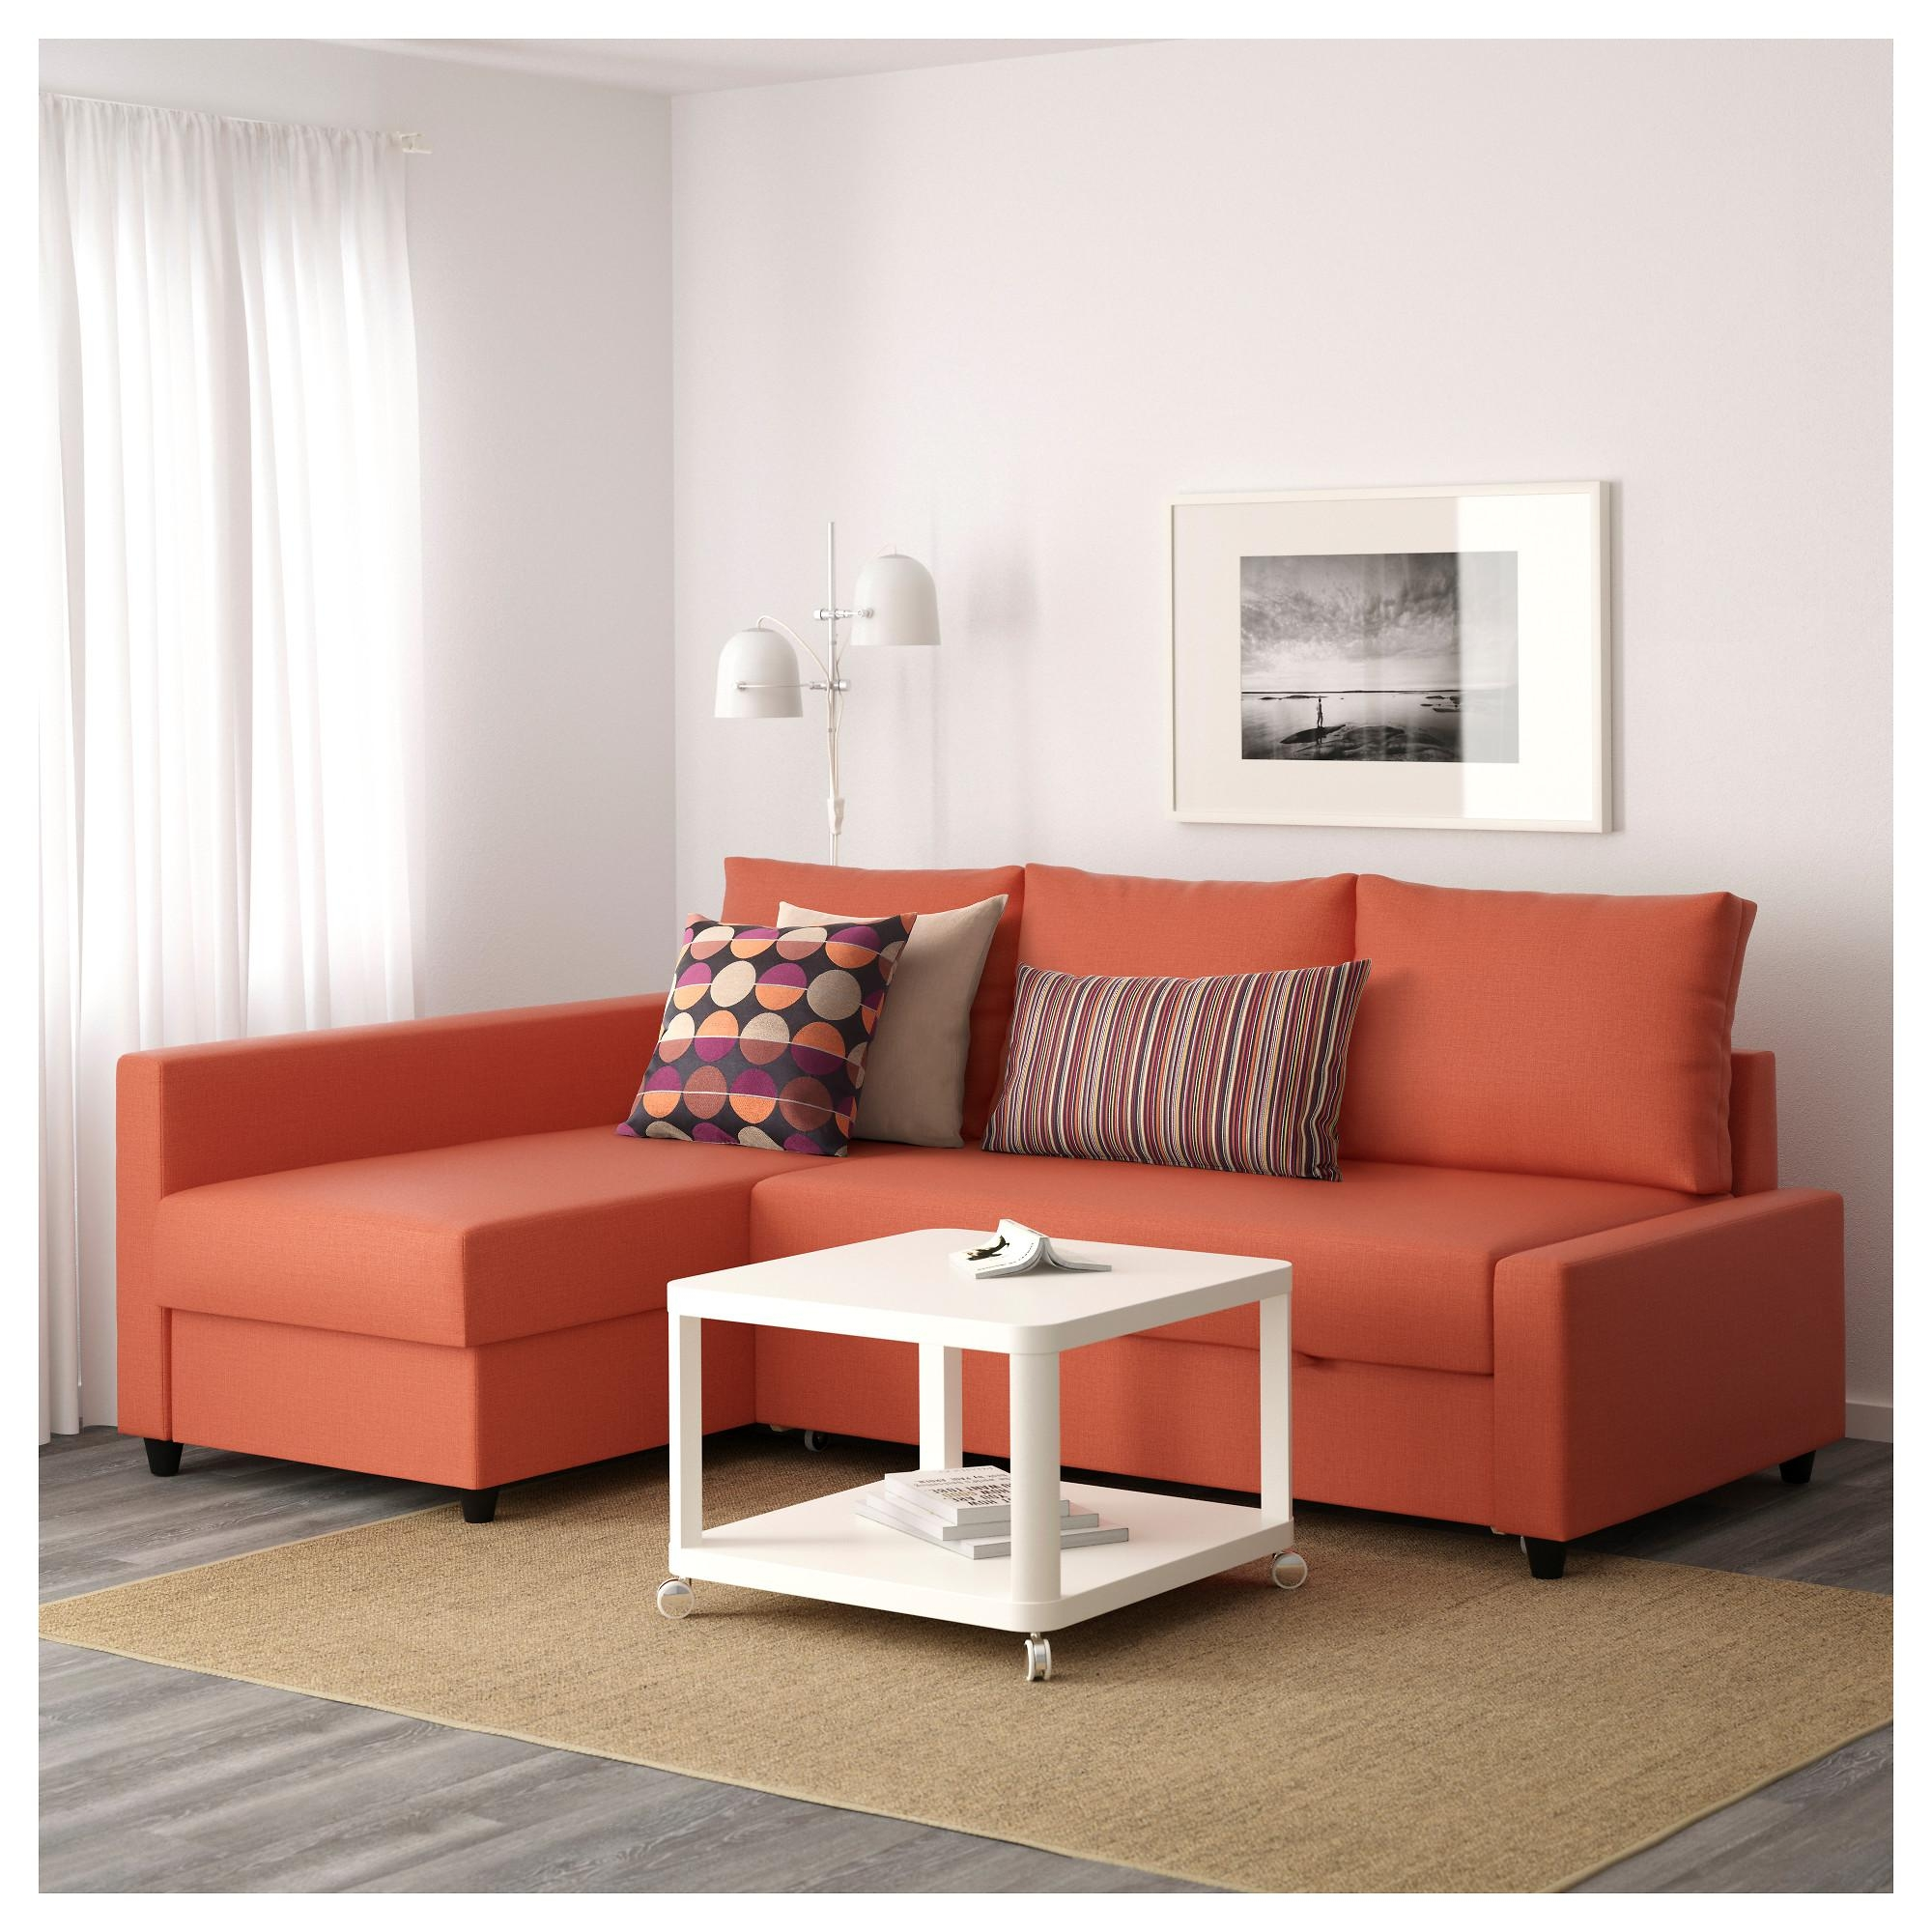 Friheten Corner Sofa Bed With Storage Skiftebo Dark Orange – Ikea Throughout Orange Ikea Sofas (View 2 of 20)